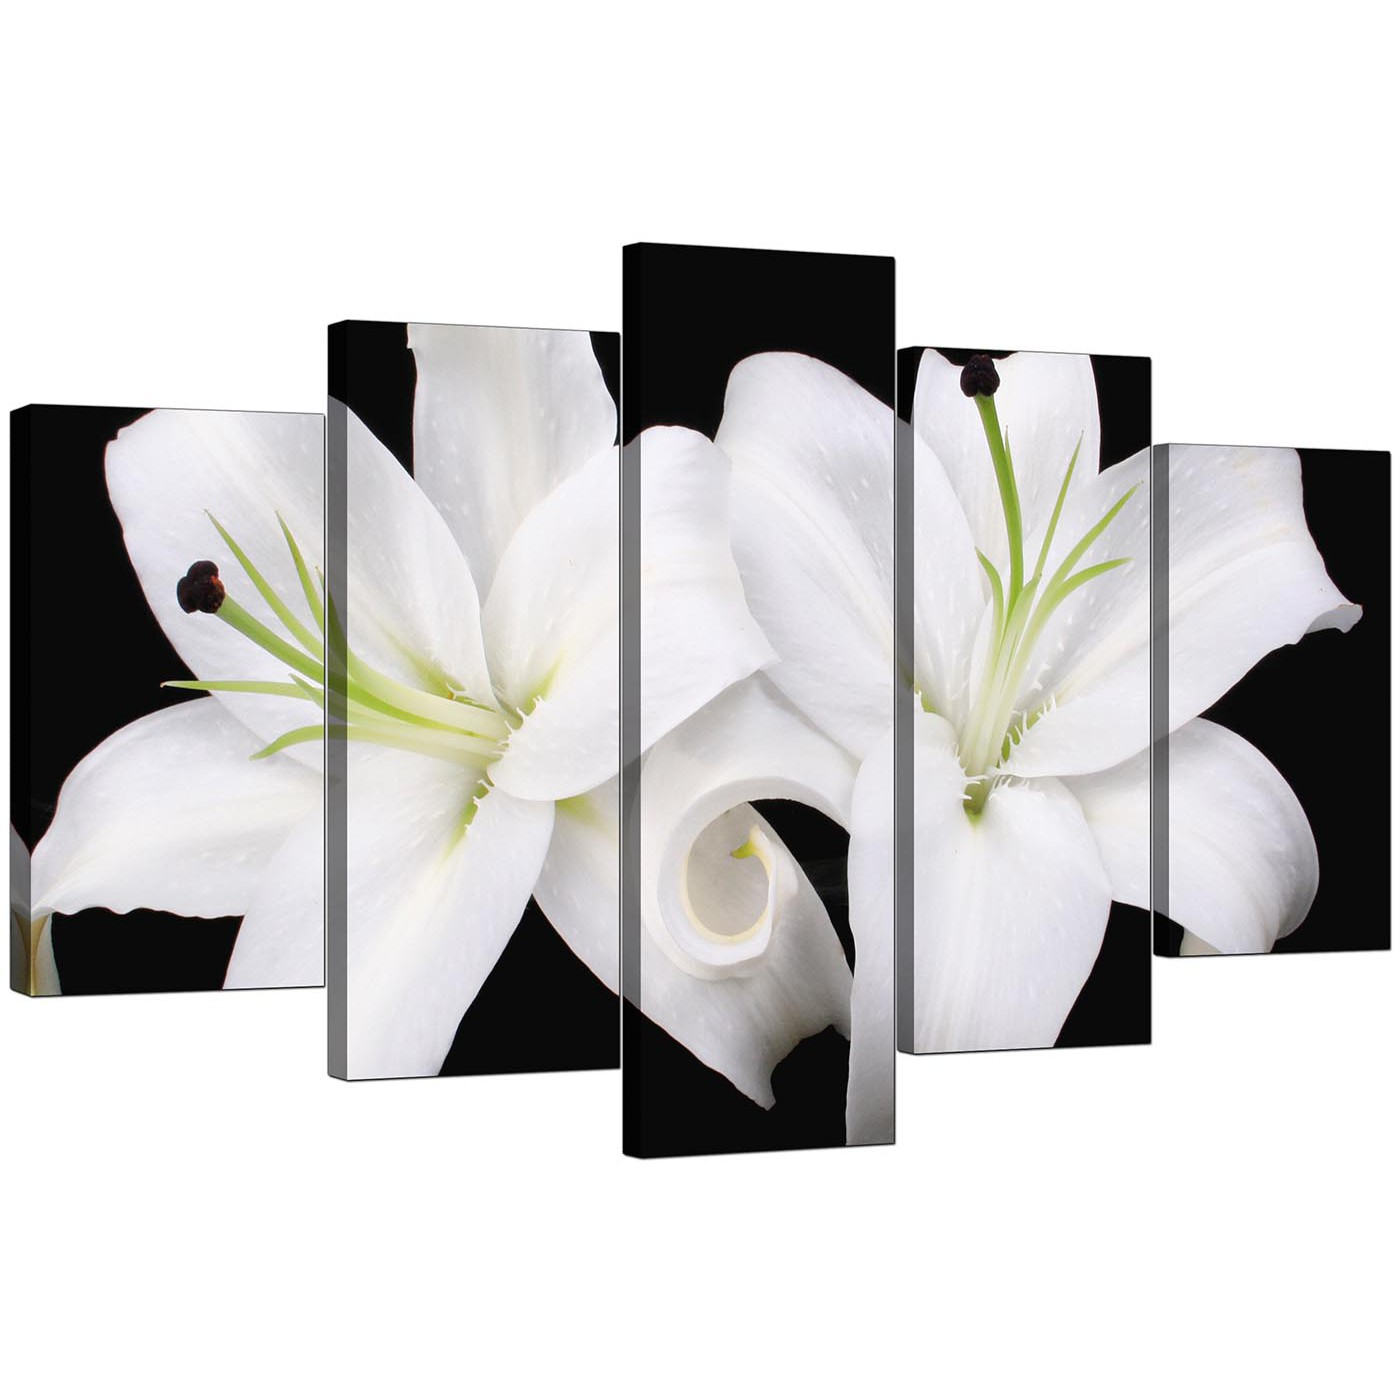 Extra large lilies canvas prints uk 5 piece in black white for Cheap black and white prints